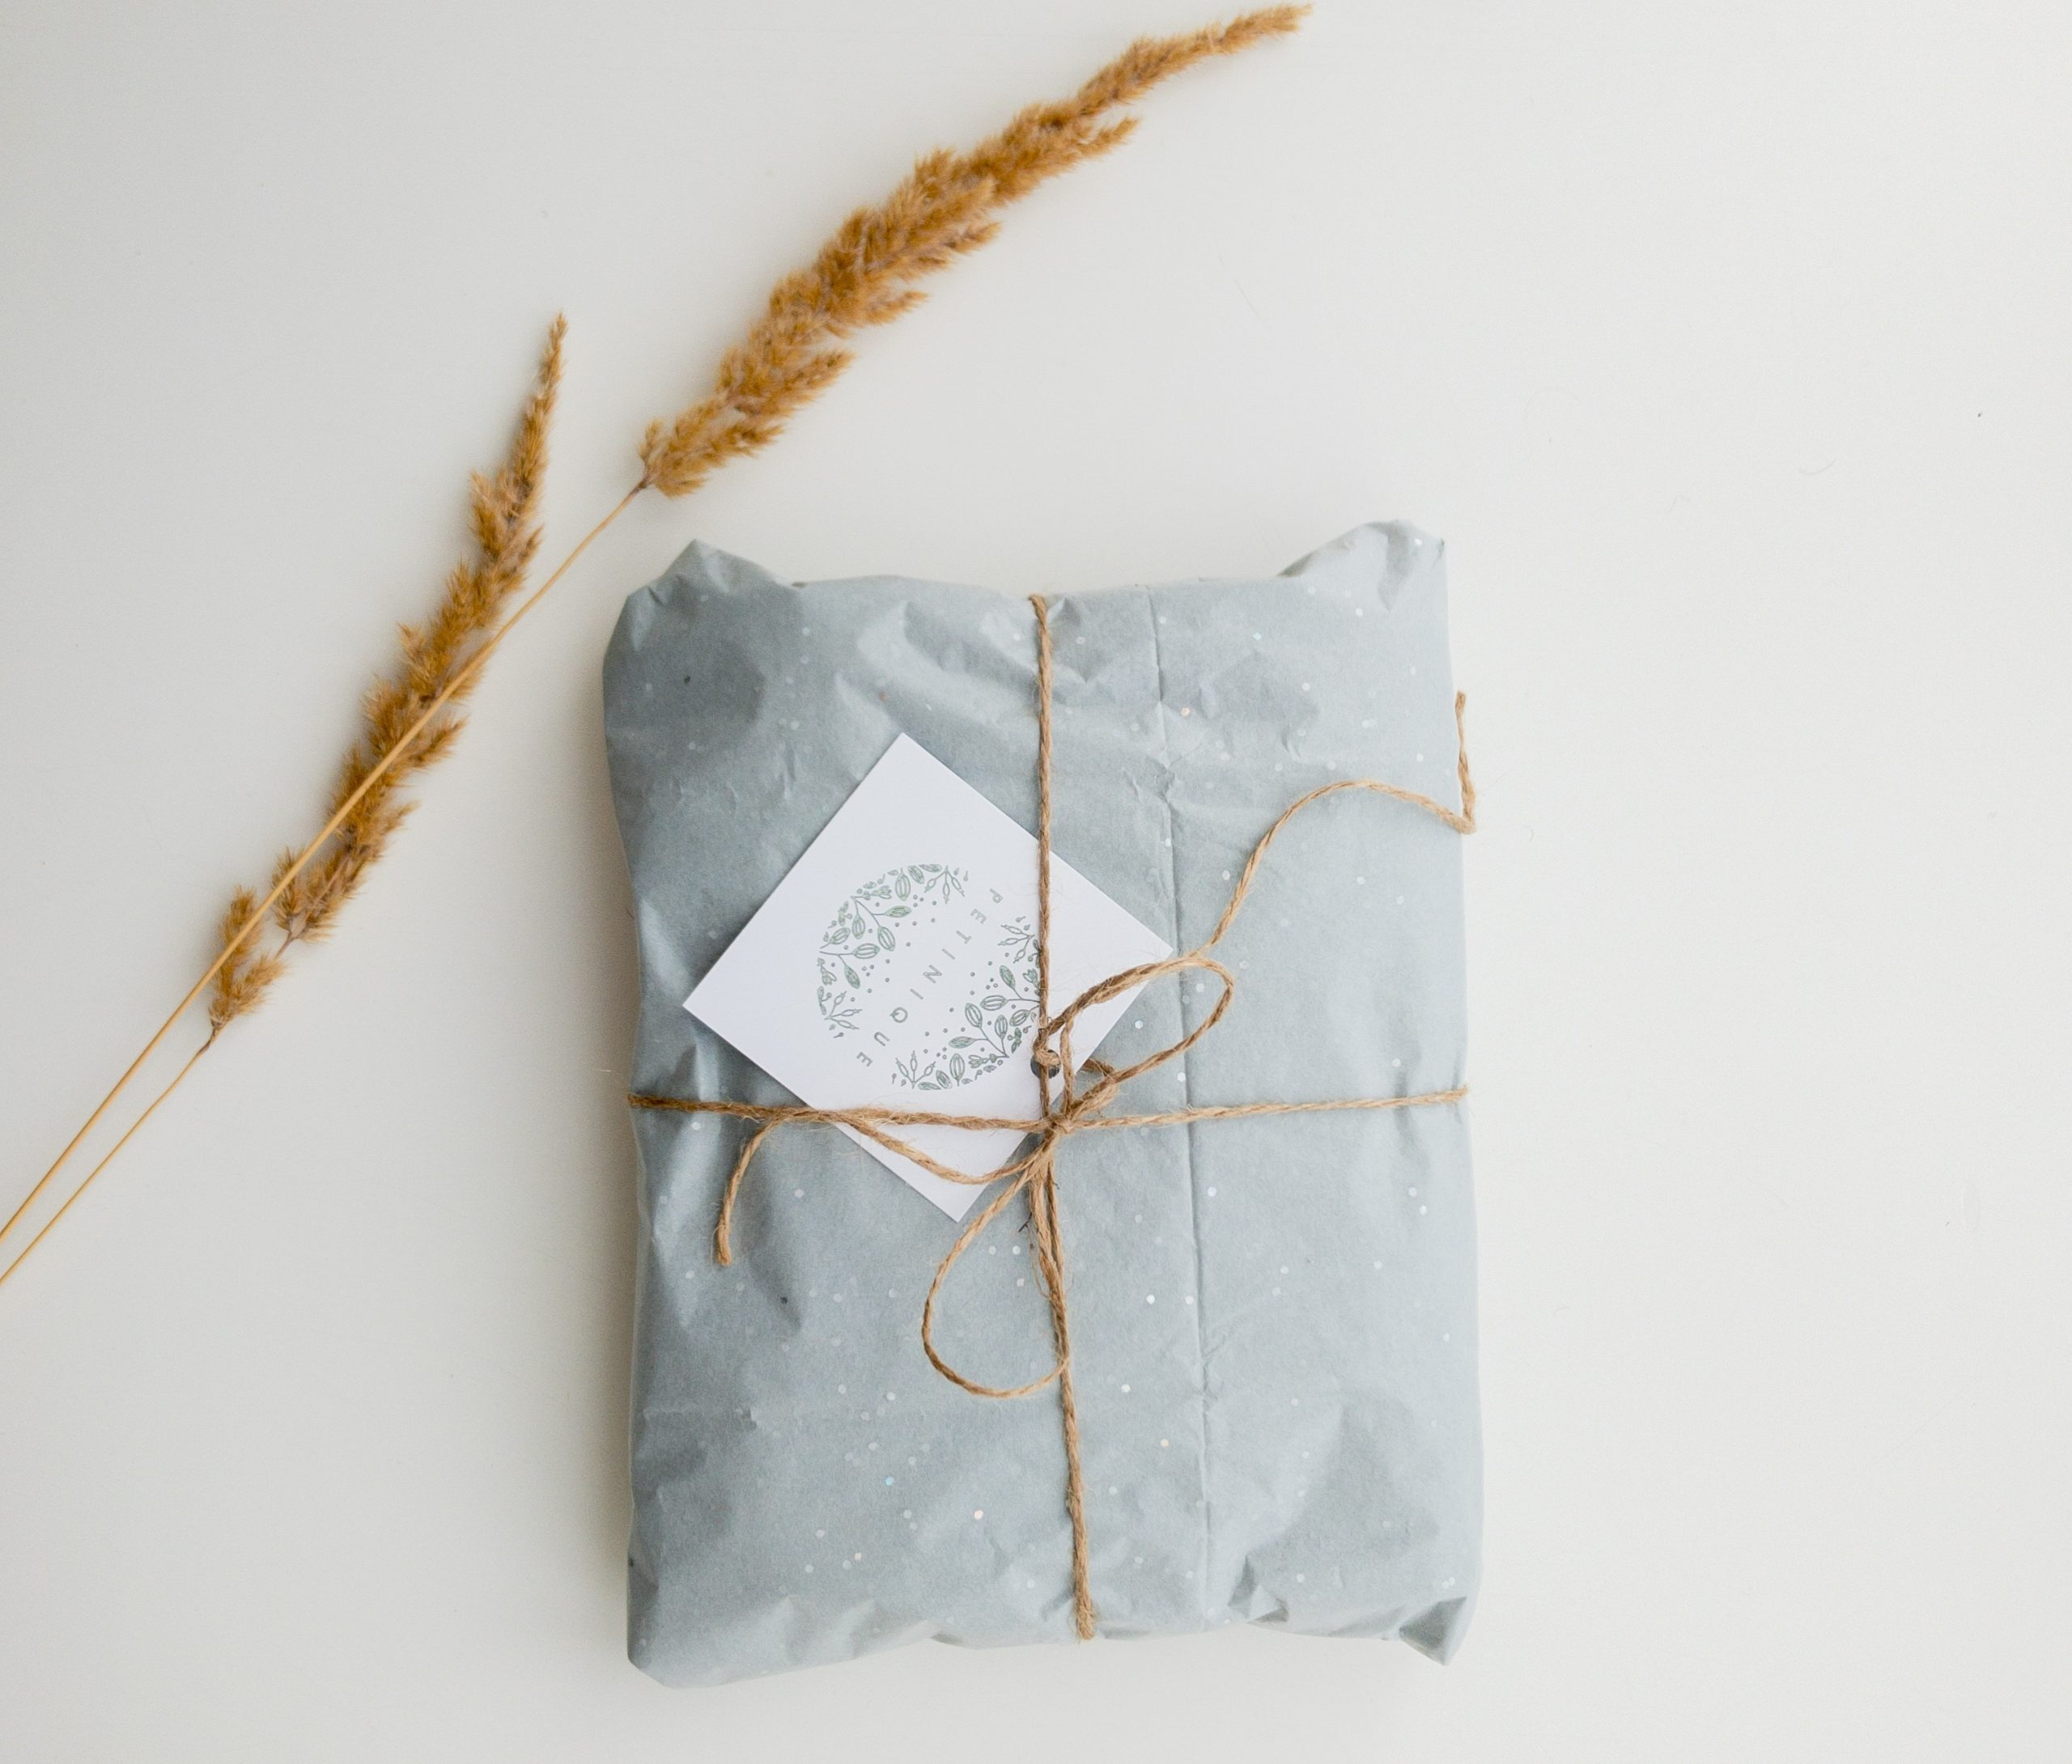 Last Minute Gifts For Ethical Travelers (UPDATED)